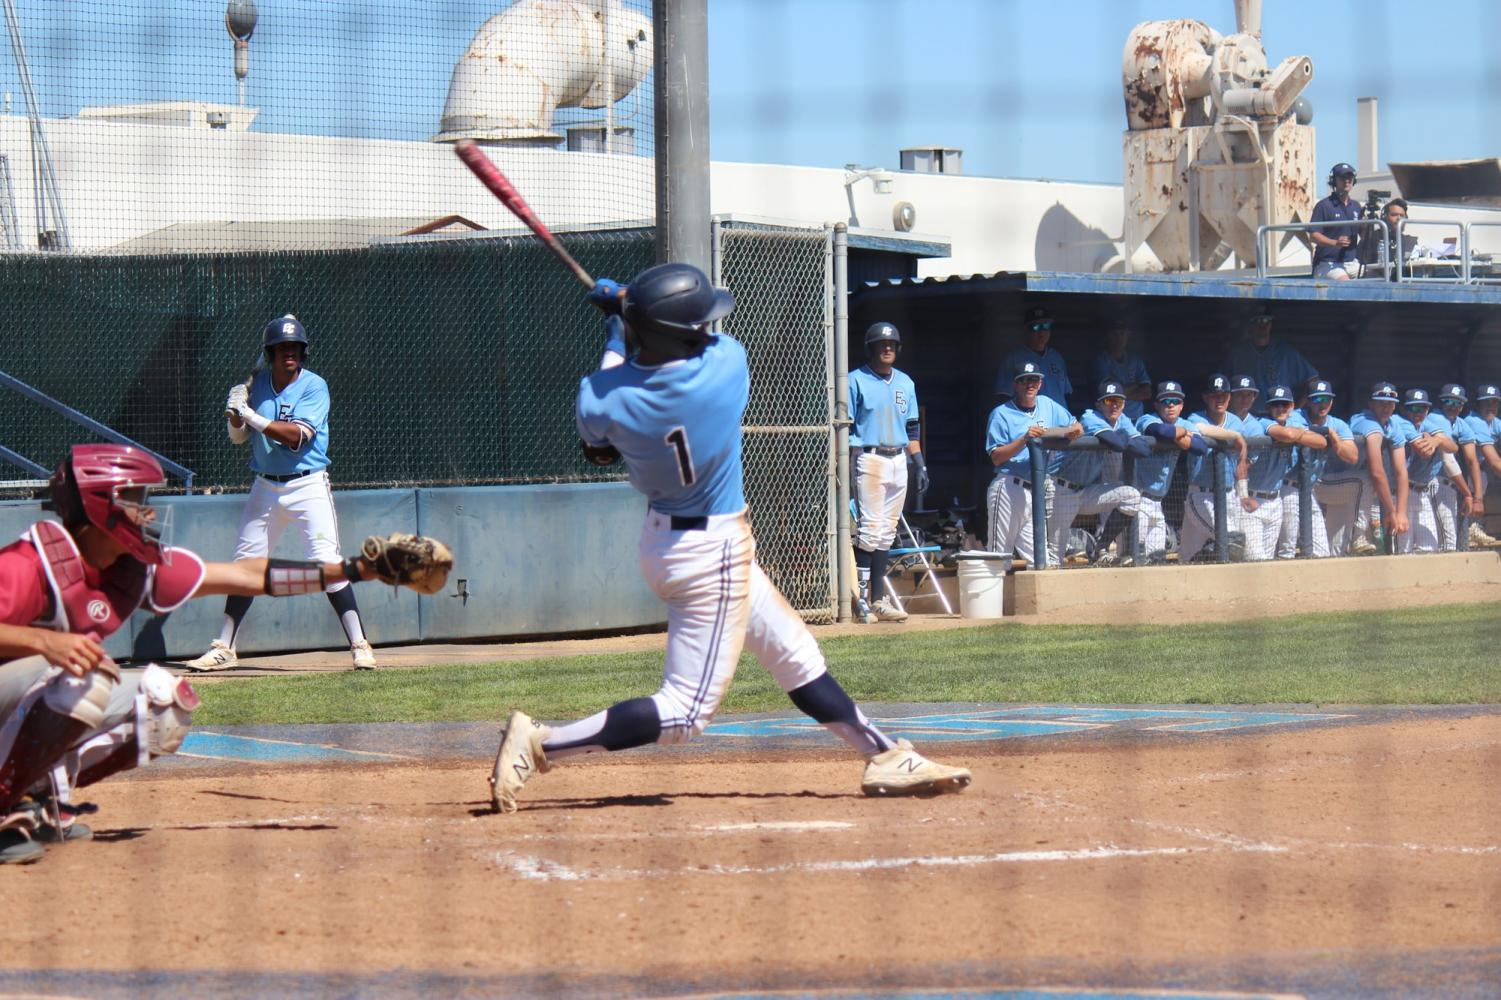 Warriors infielder Taishi Nakawake (No. 1) swinging for the fences versus Pasadena City College on Saturday, March 16 at Warrior Field. The Warriors scored seven runs alone in the seventh inning. Photo credit: Kealoha Noguchi